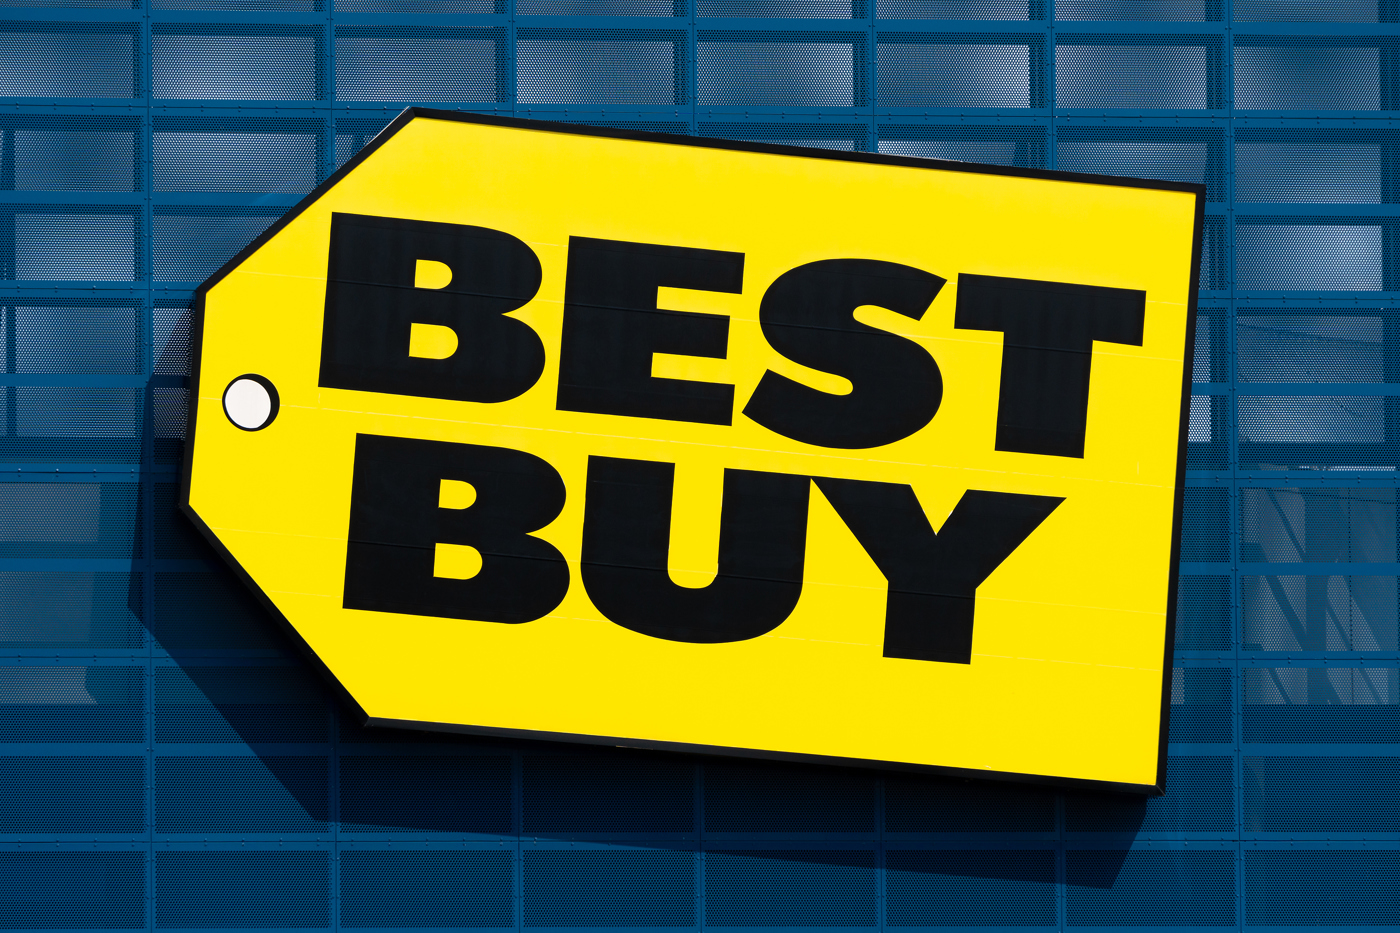 Best Buy stock, BBY stock, electronics stocks